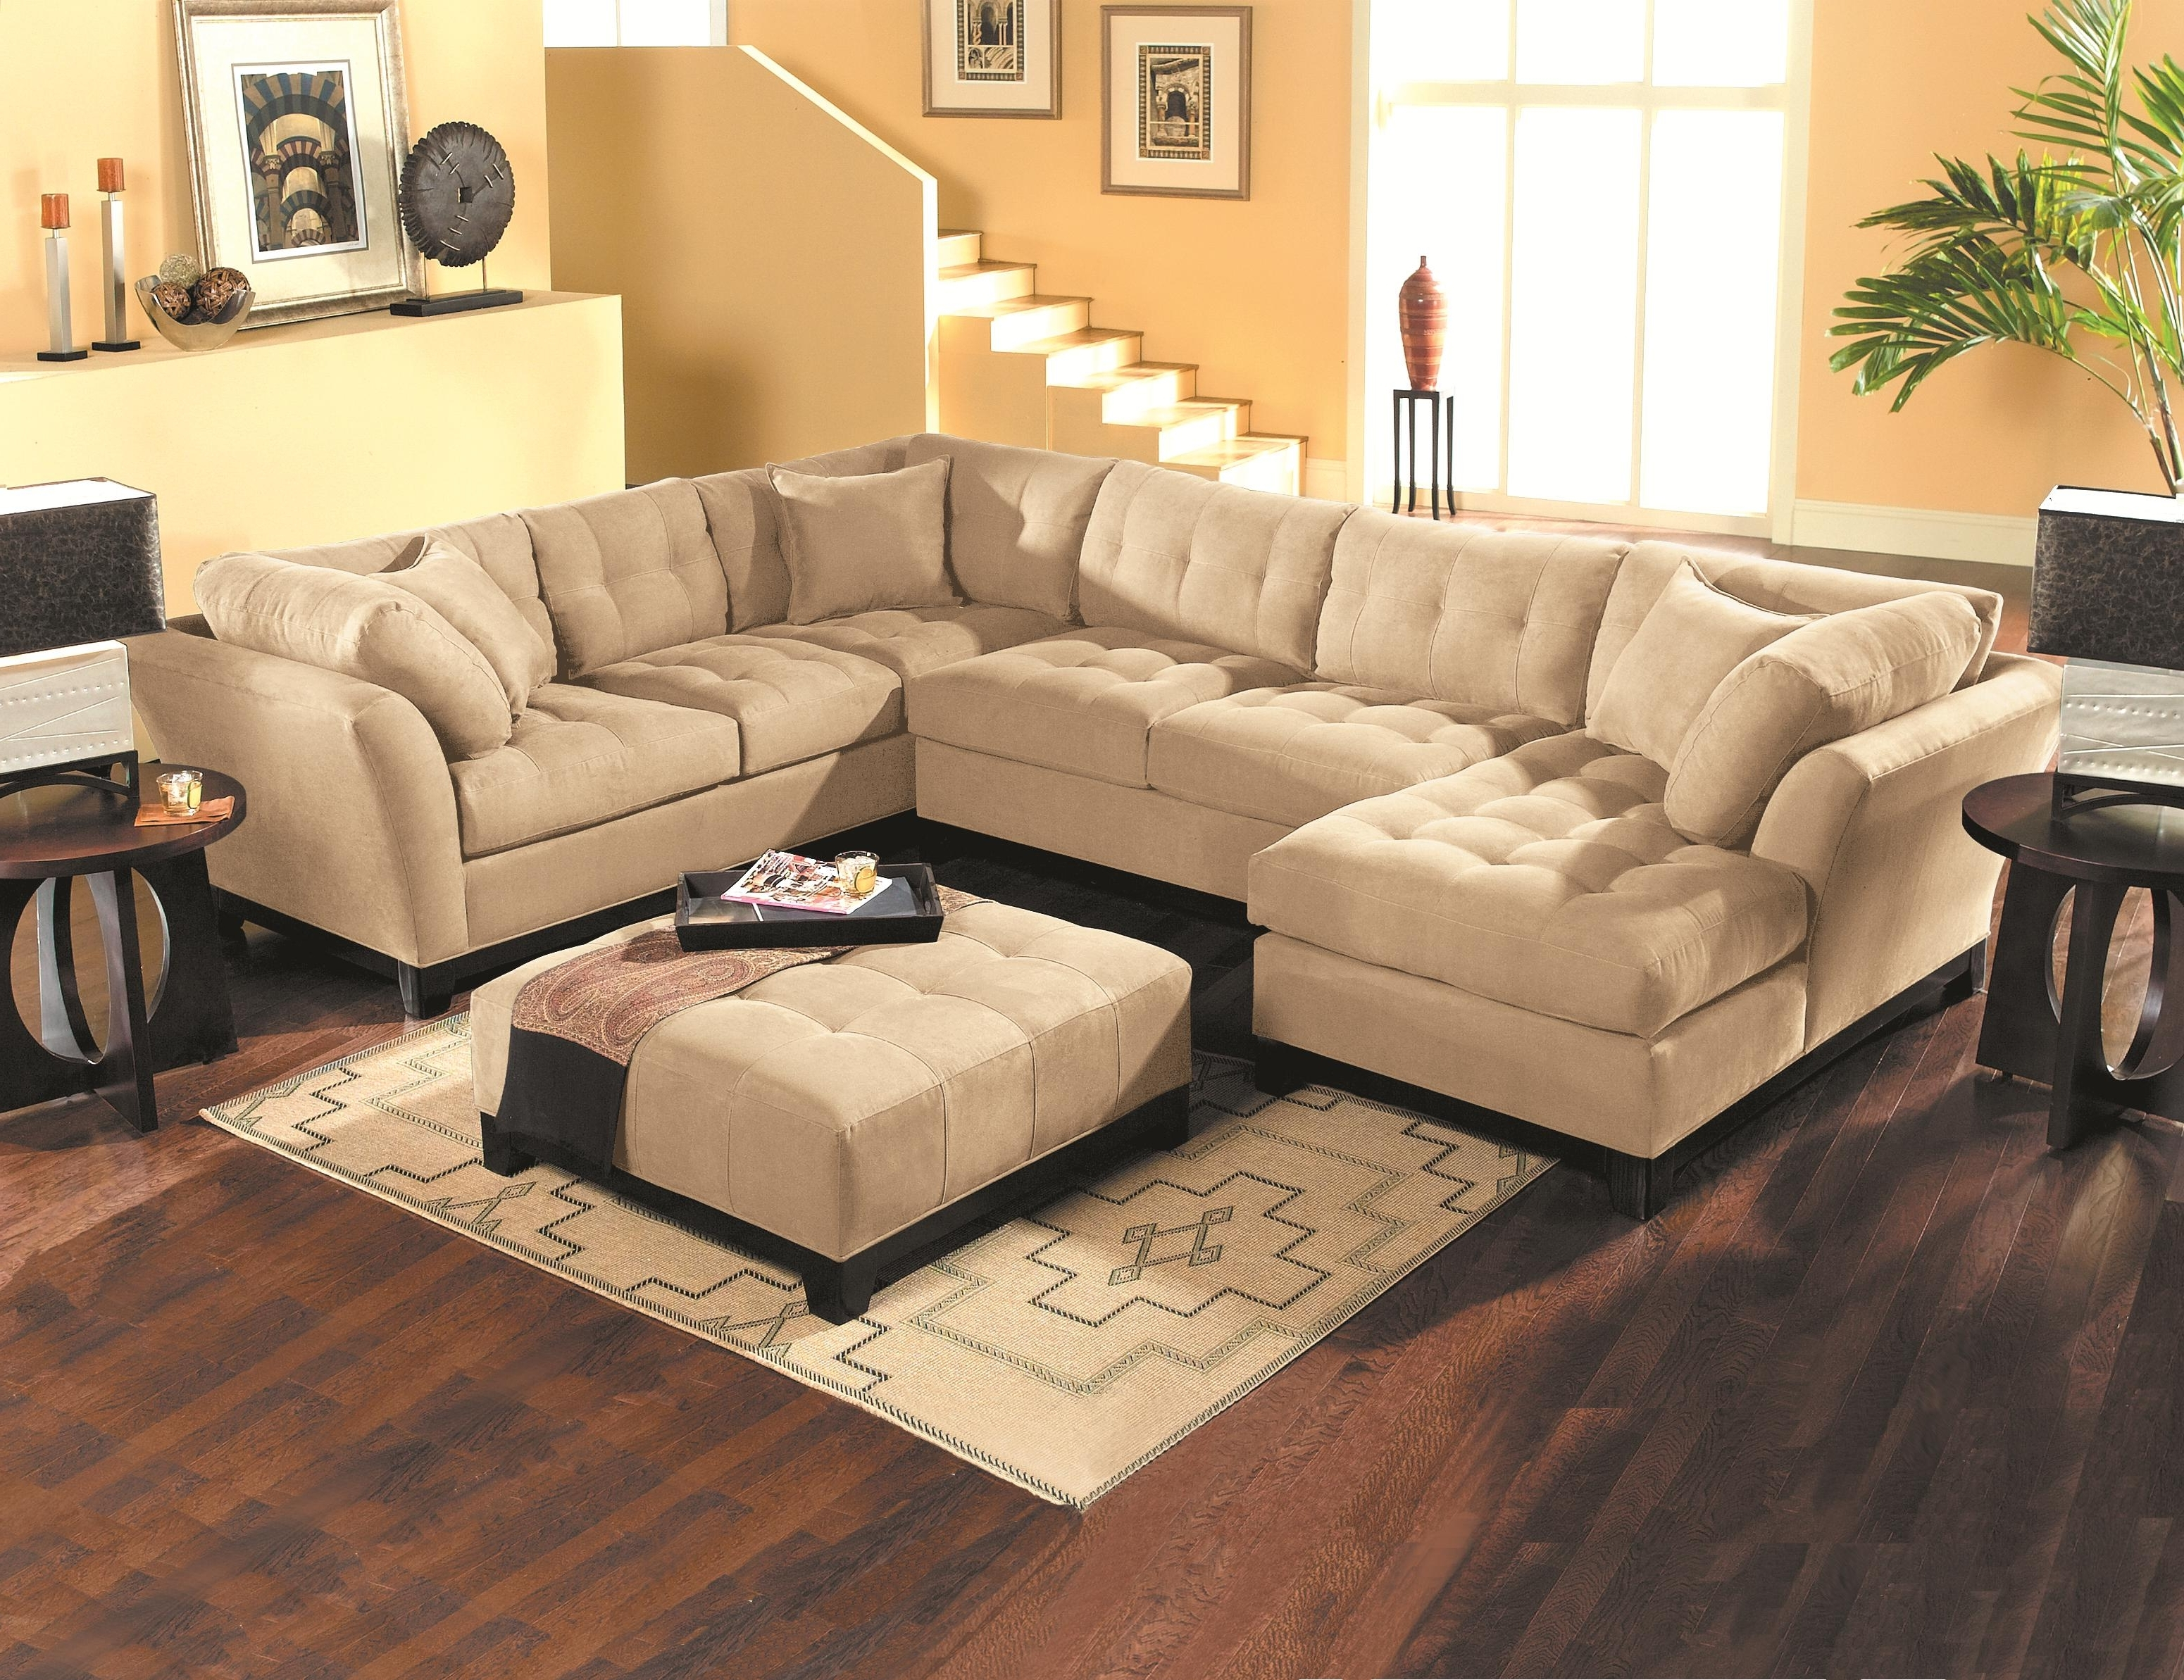 Sectional Regarding Tufted Sectional Sofas (View 10 of 20)